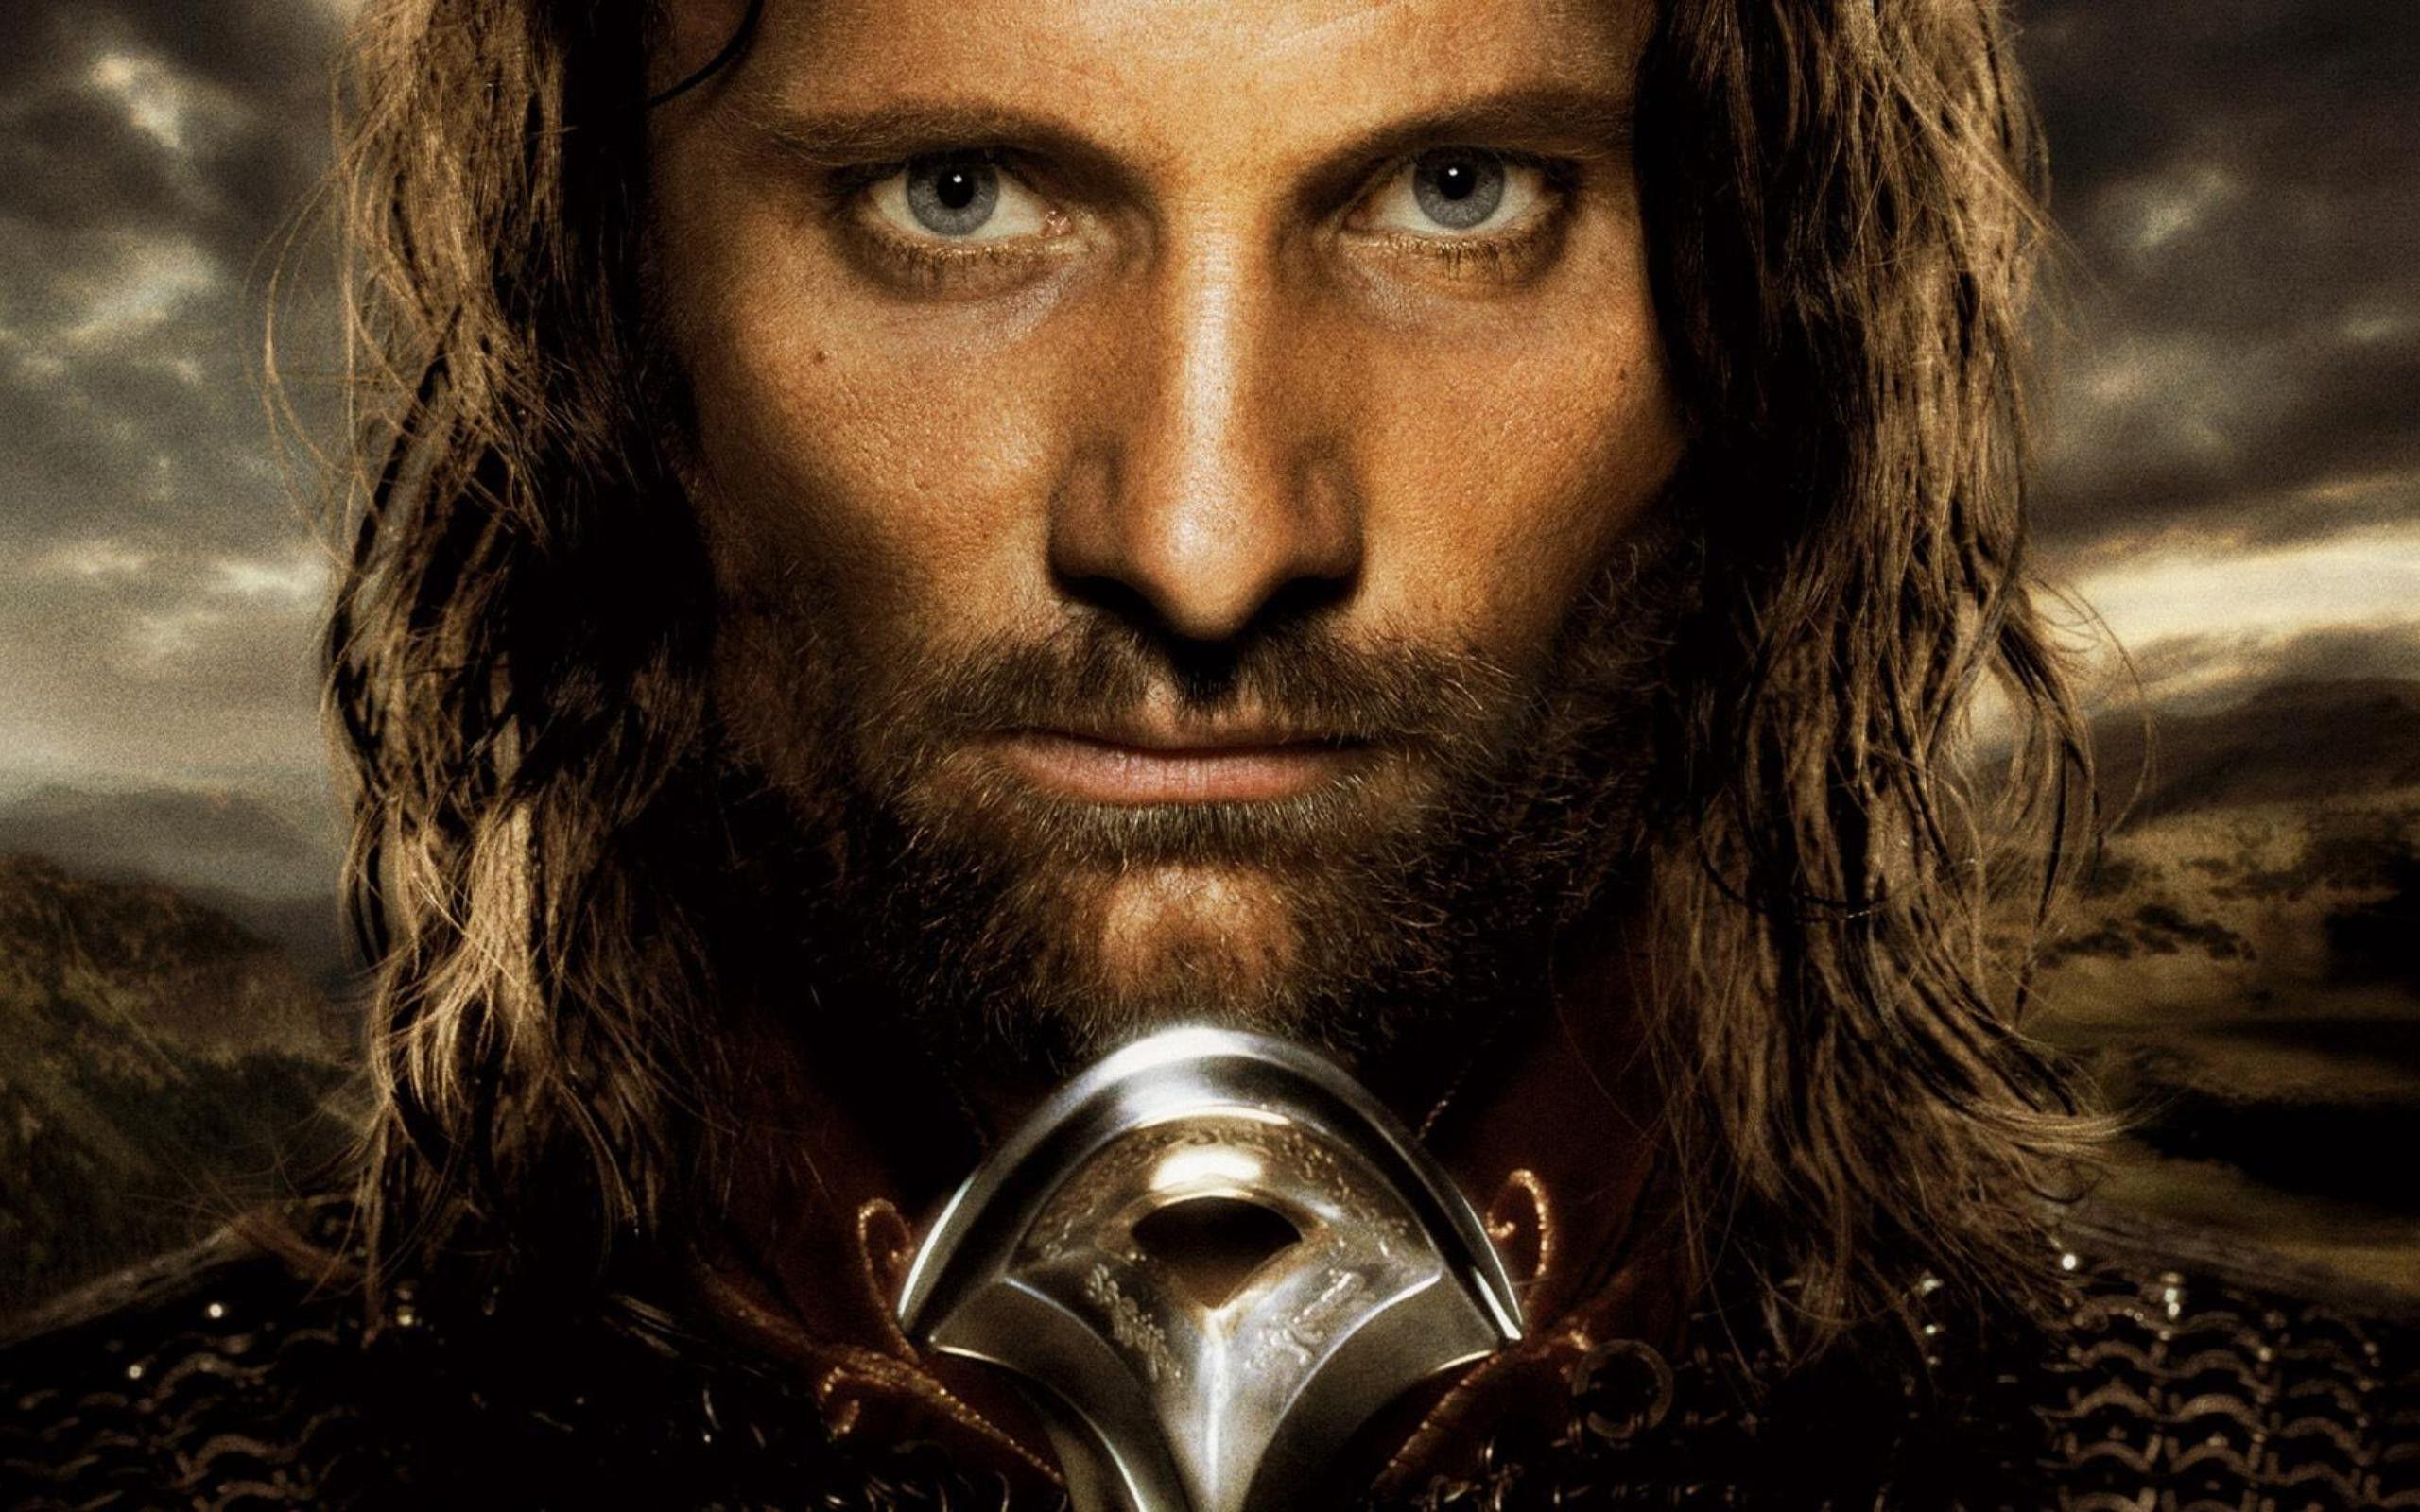 movies, The Lord Of The Rings, Aragorn, Viggo Mortensen, The Lord